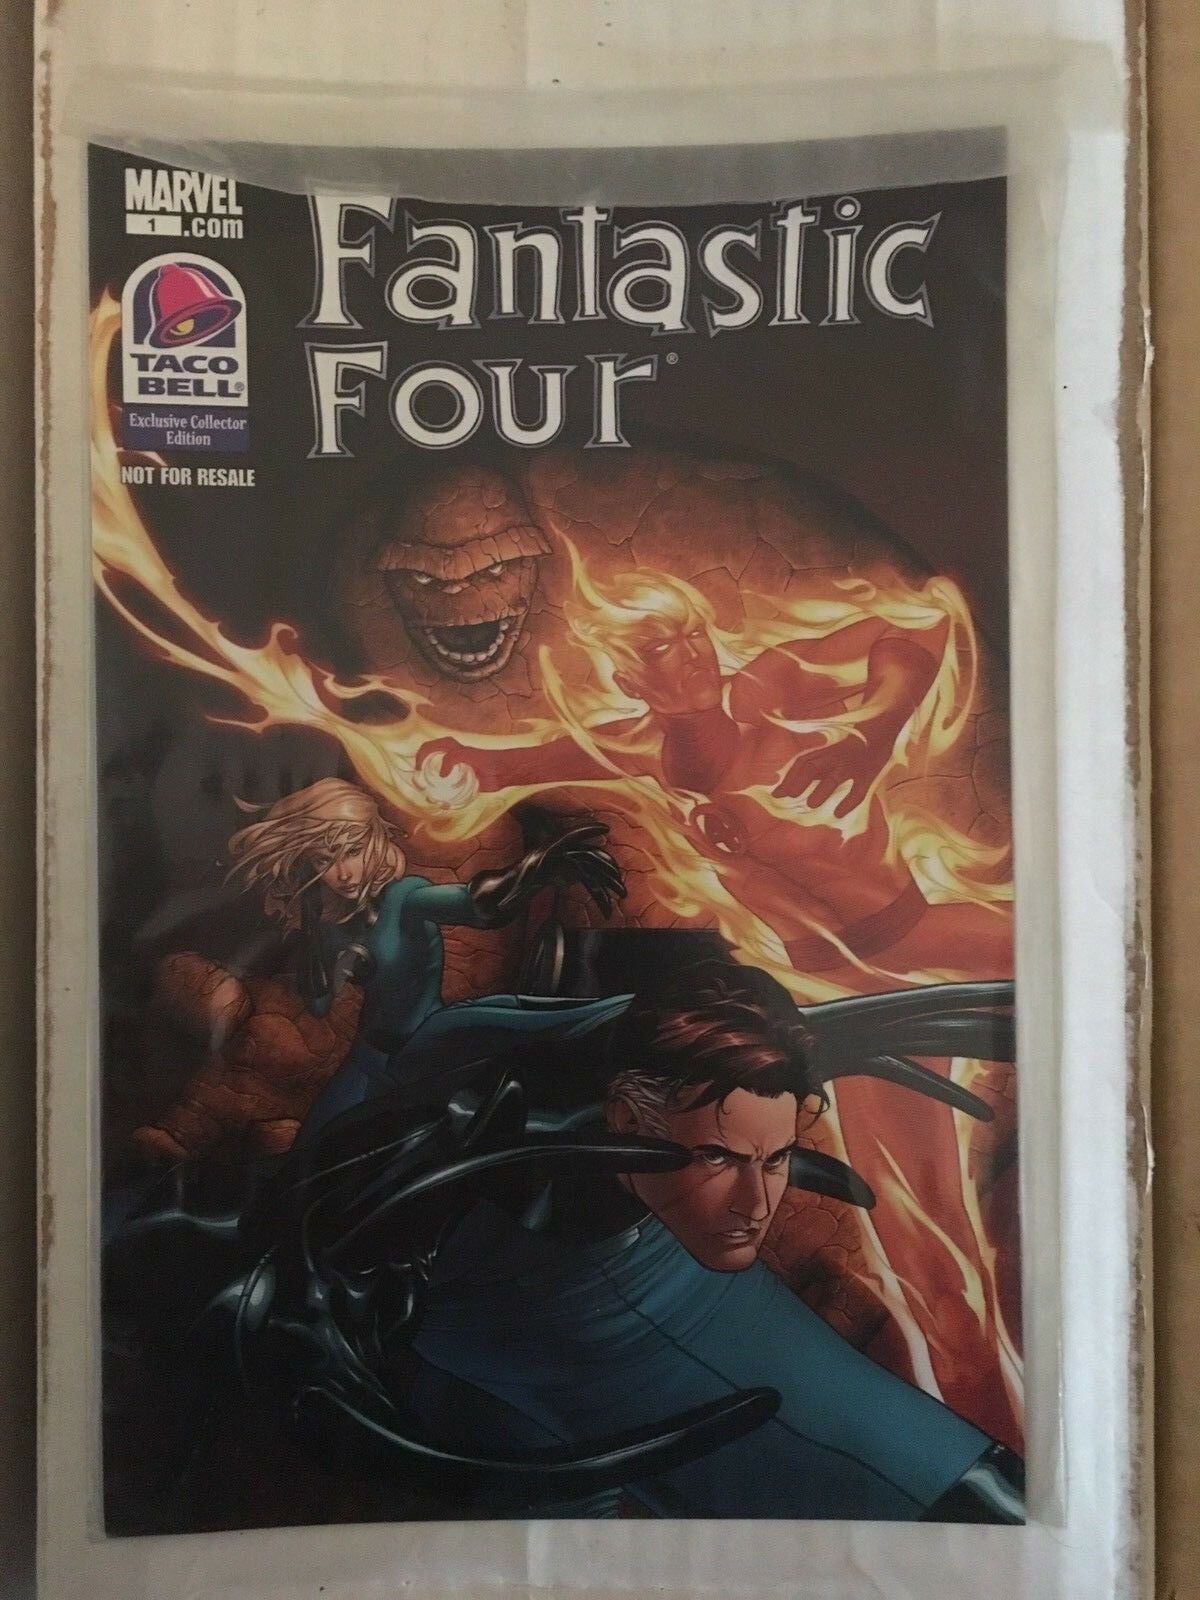 Fantastic Four #1 Taco Bell 2010 Marvel Comic Book Unopened Factory Sealed